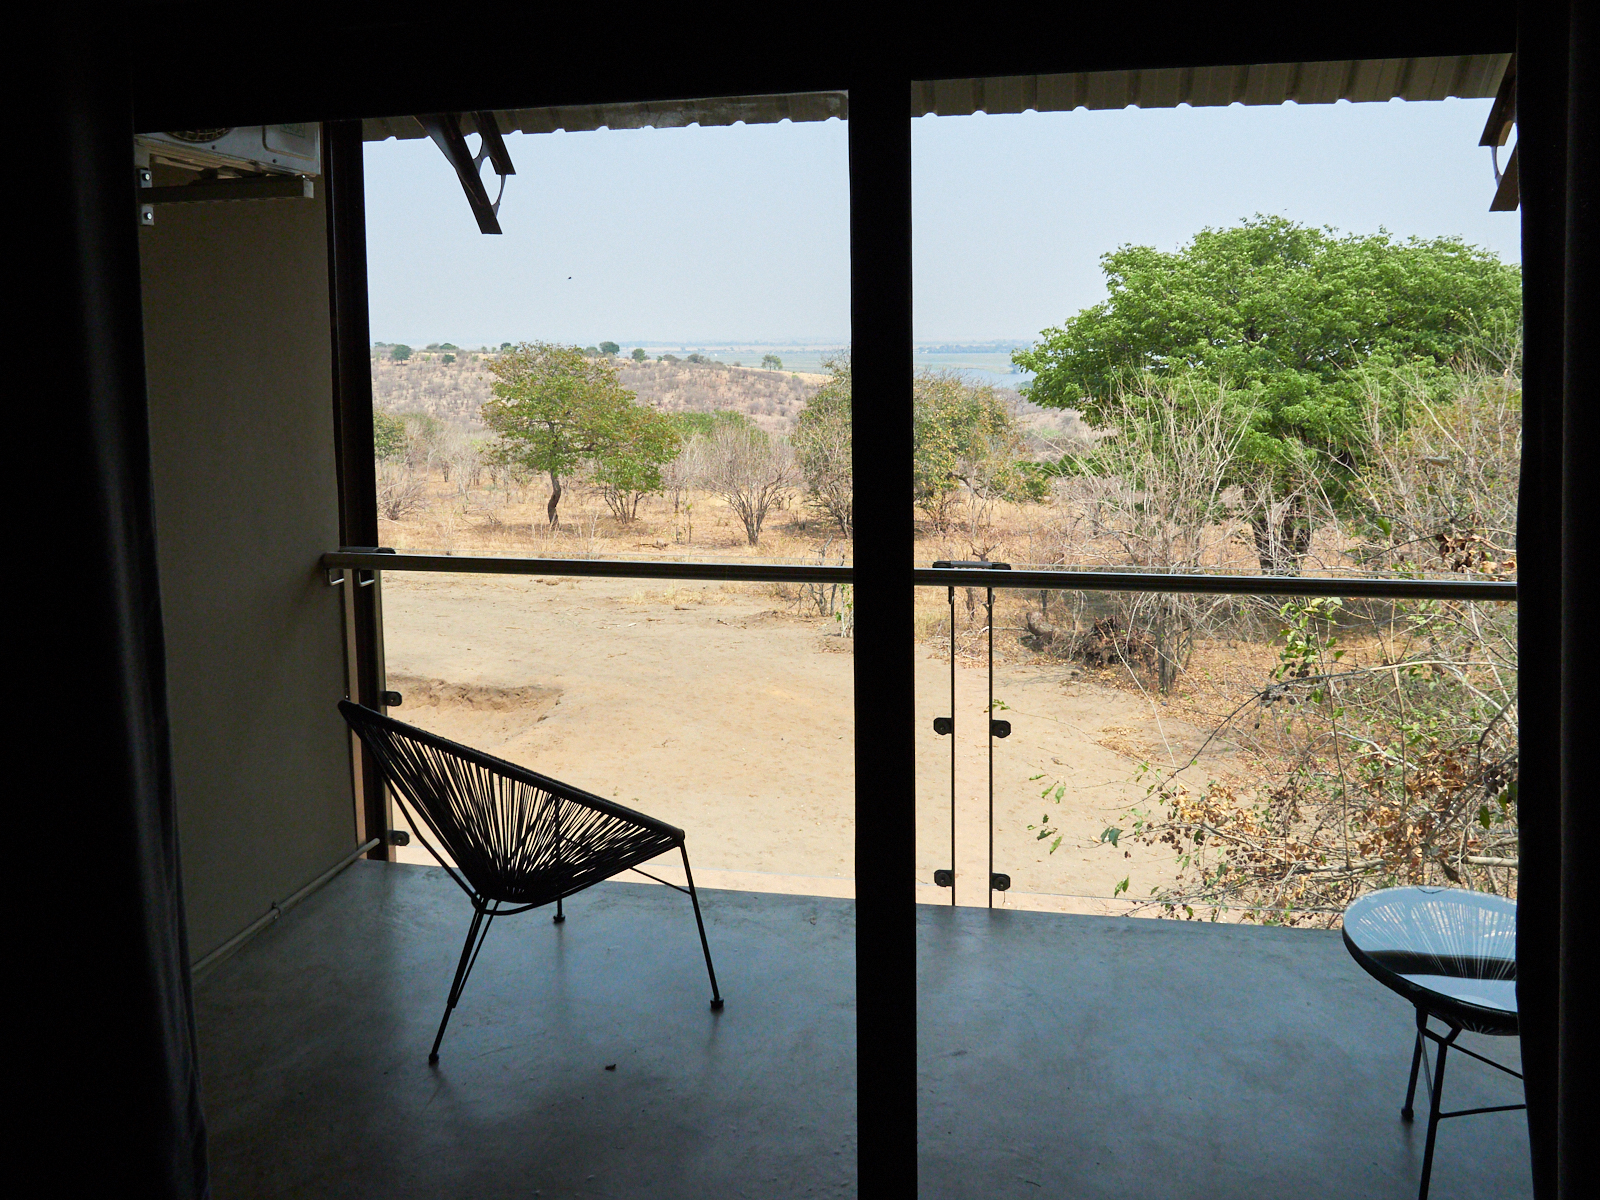 My balcony, and the view over the Chobe river